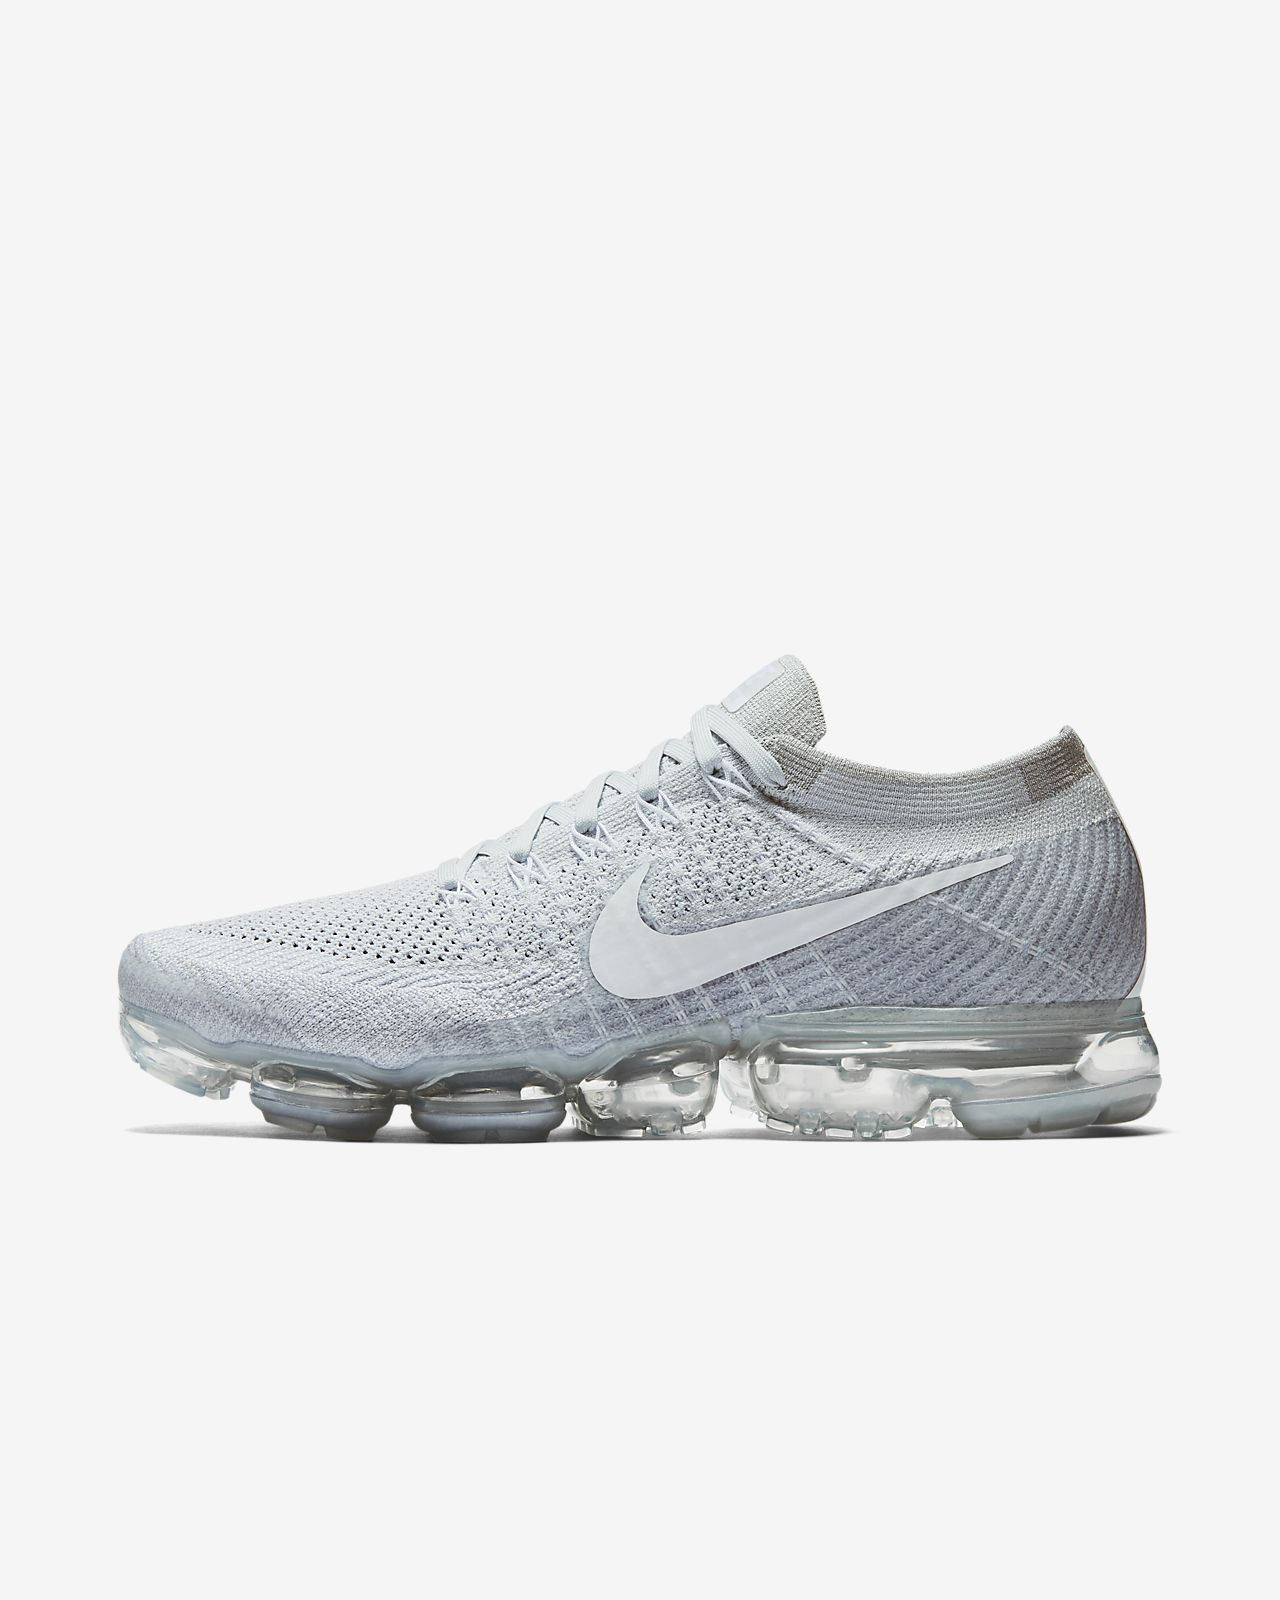 nike chaussure blanche homme